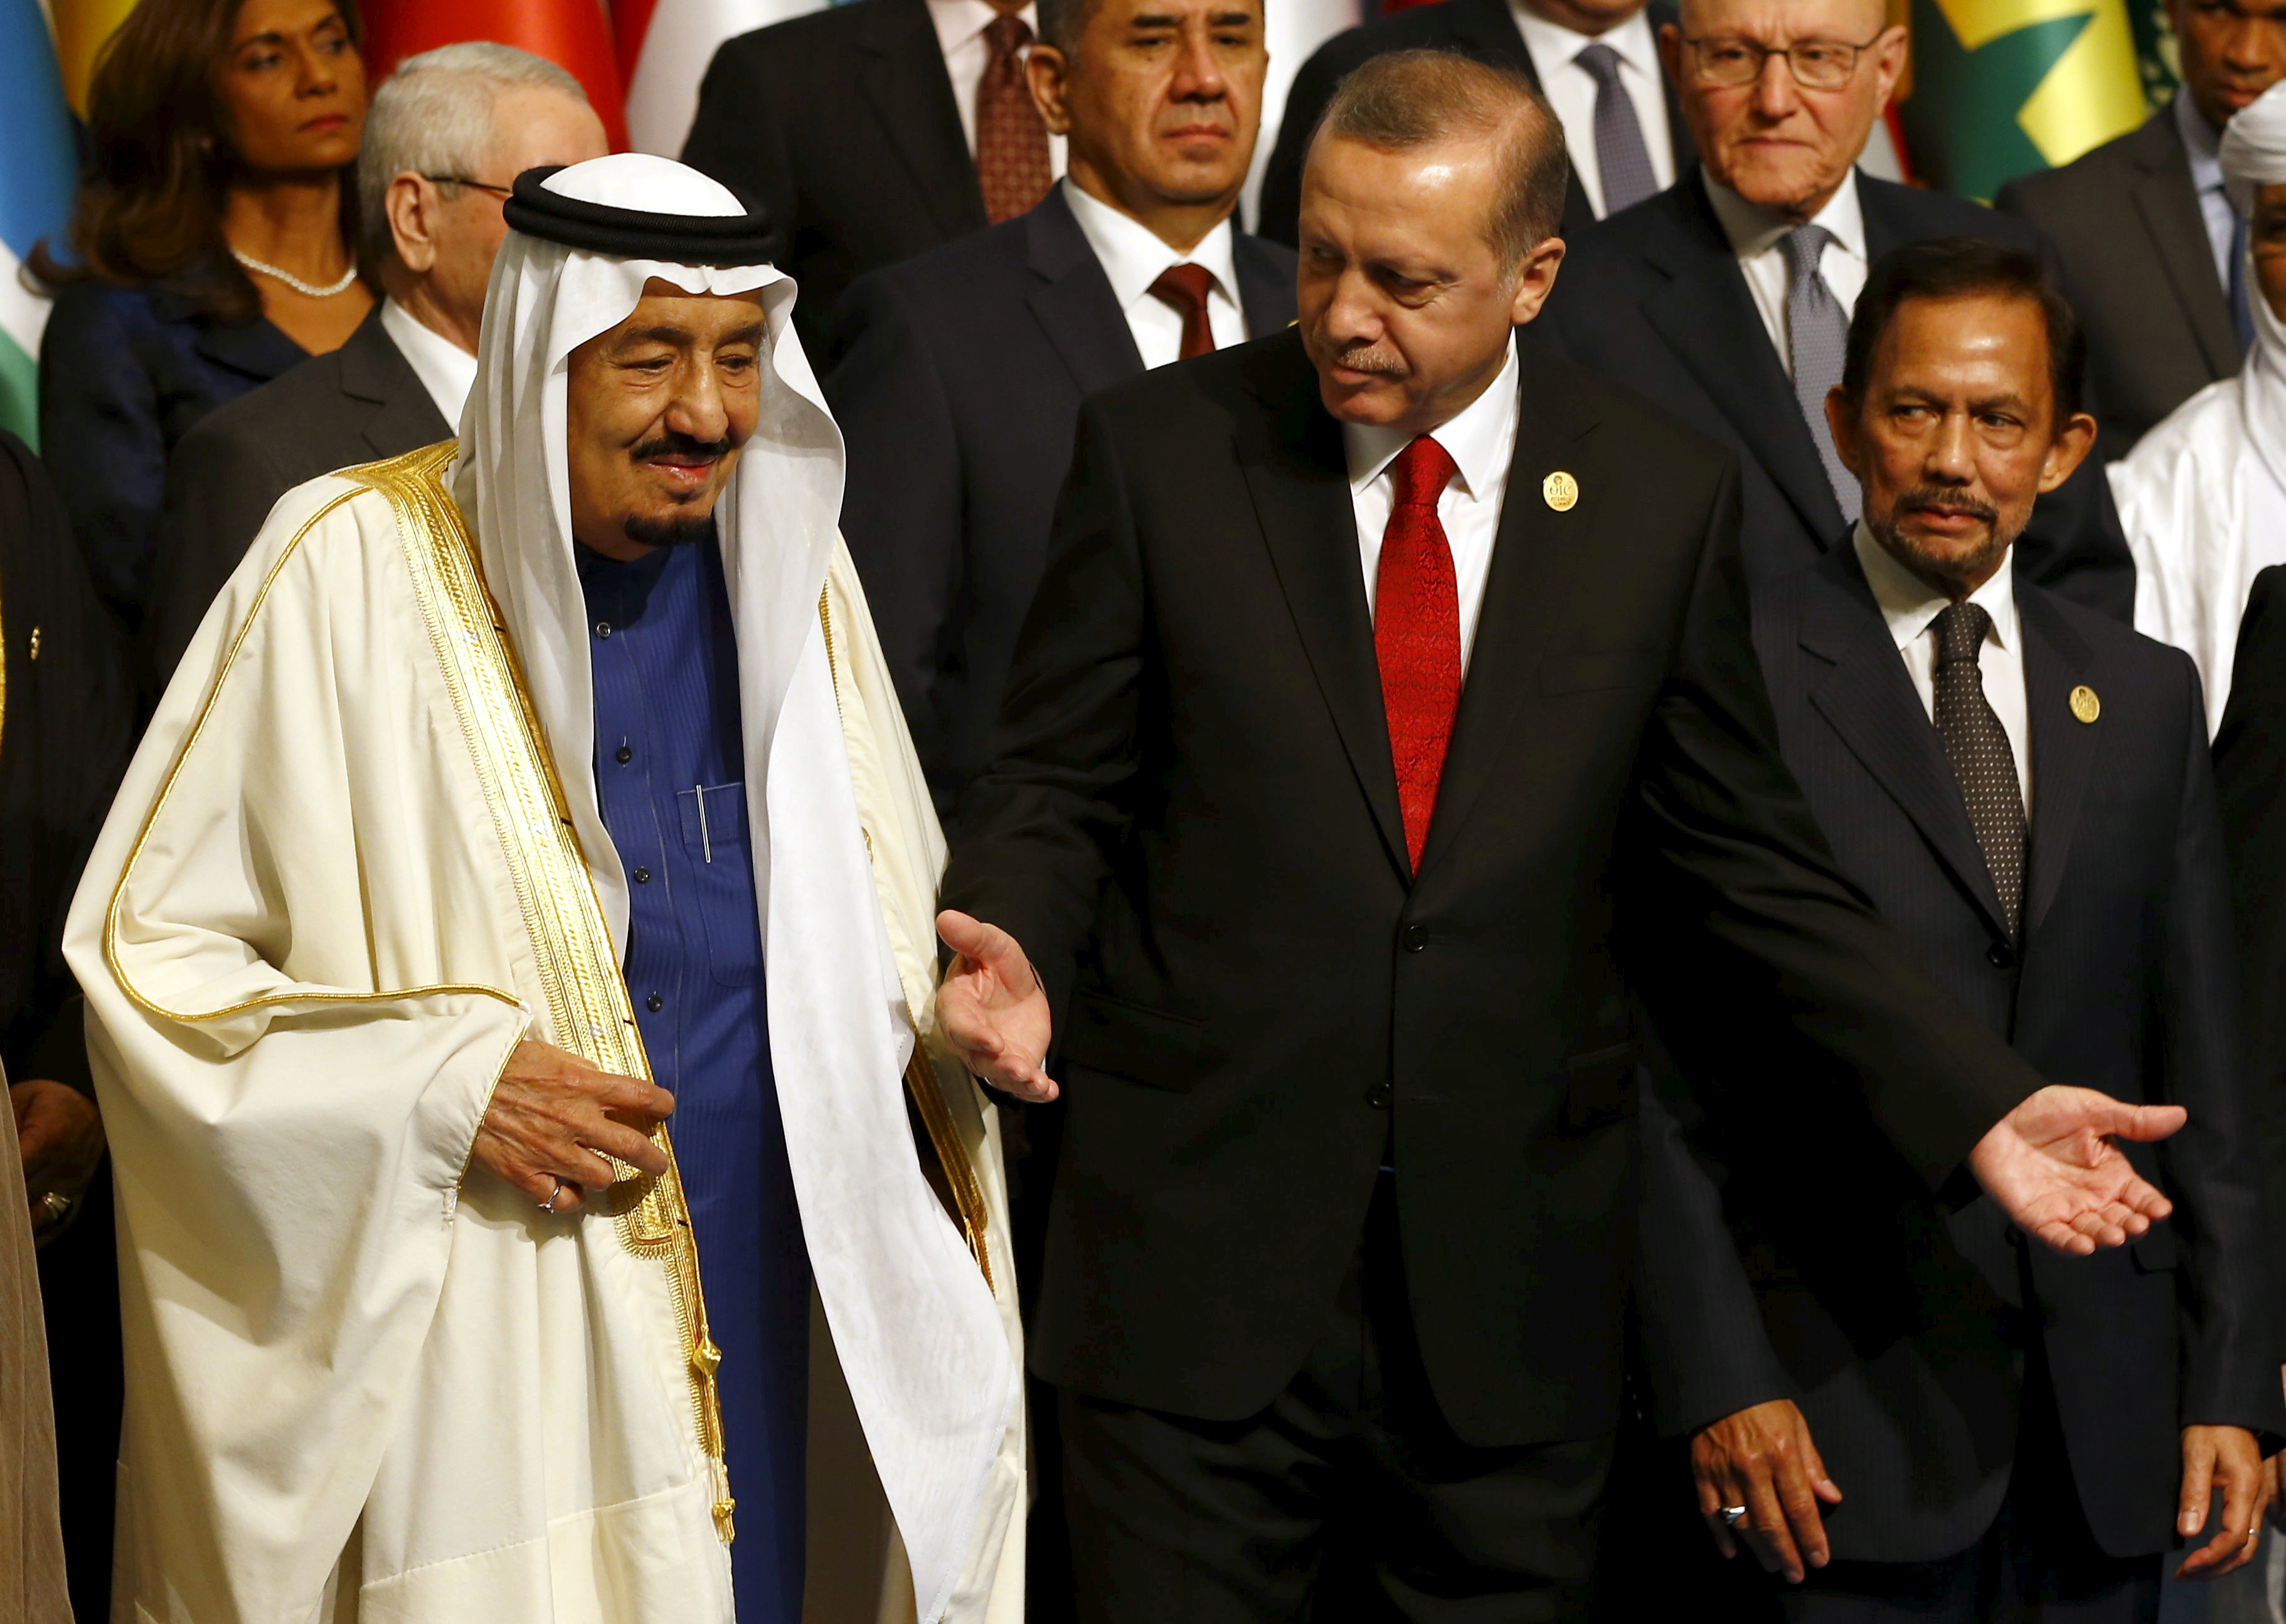 FILE - Turkish President Recep Tayyip Erdogan and King Salman of Saudi Arabia are pictured during a photo session at the Organization of Islamic Cooperation's summit in Istanbul, April 14, 2016.